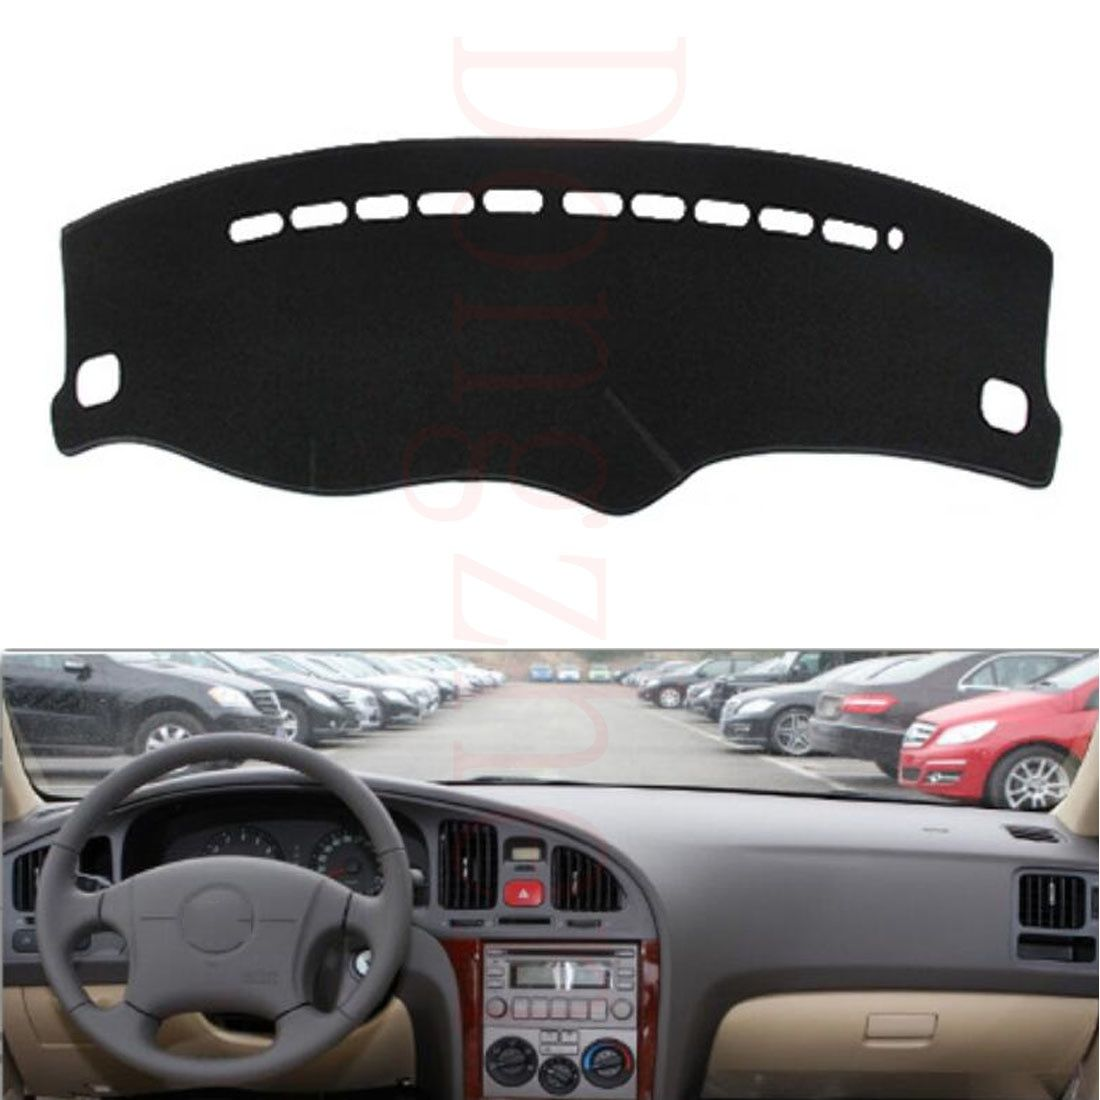 Dongzhen Fit For HYUNDAI Elantra 2004-2011 Car Dashboard Cover Avoid Light Pad Instrument Platform Dash Board Cover Car Styling